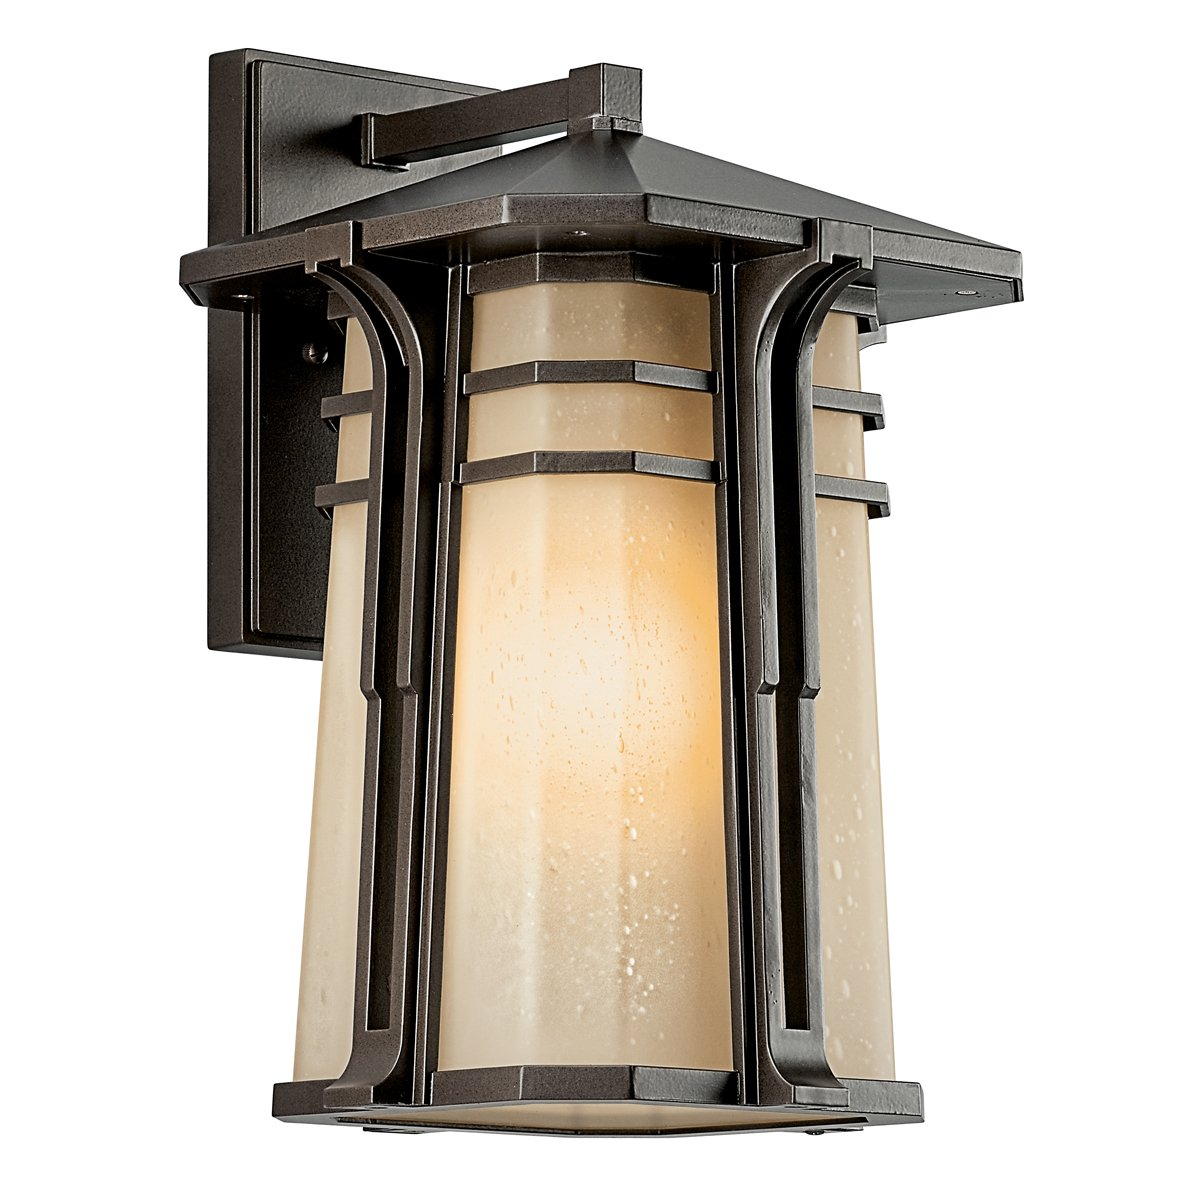 Outdoor led wall lantern olde bronze wall porch lights amazon com - Kichler Lighting 49177oz Fl North Creek 18 Inch High Light Fluorescent Outdoor Wall Lantern Olde Bronze With Light Umber Etched Seedy Glass Wall Porch